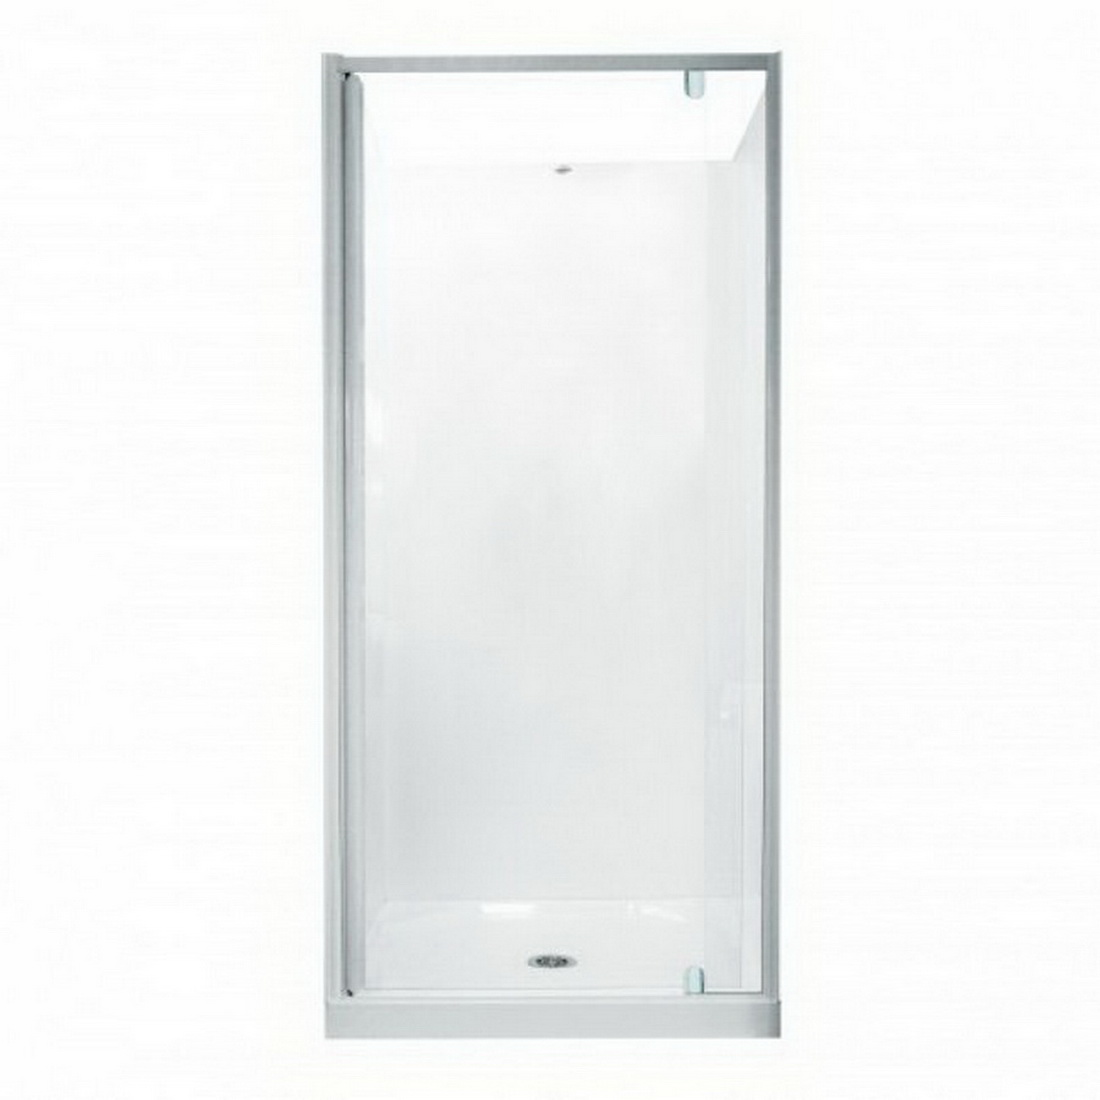 Trombone 840mm Shower Door White